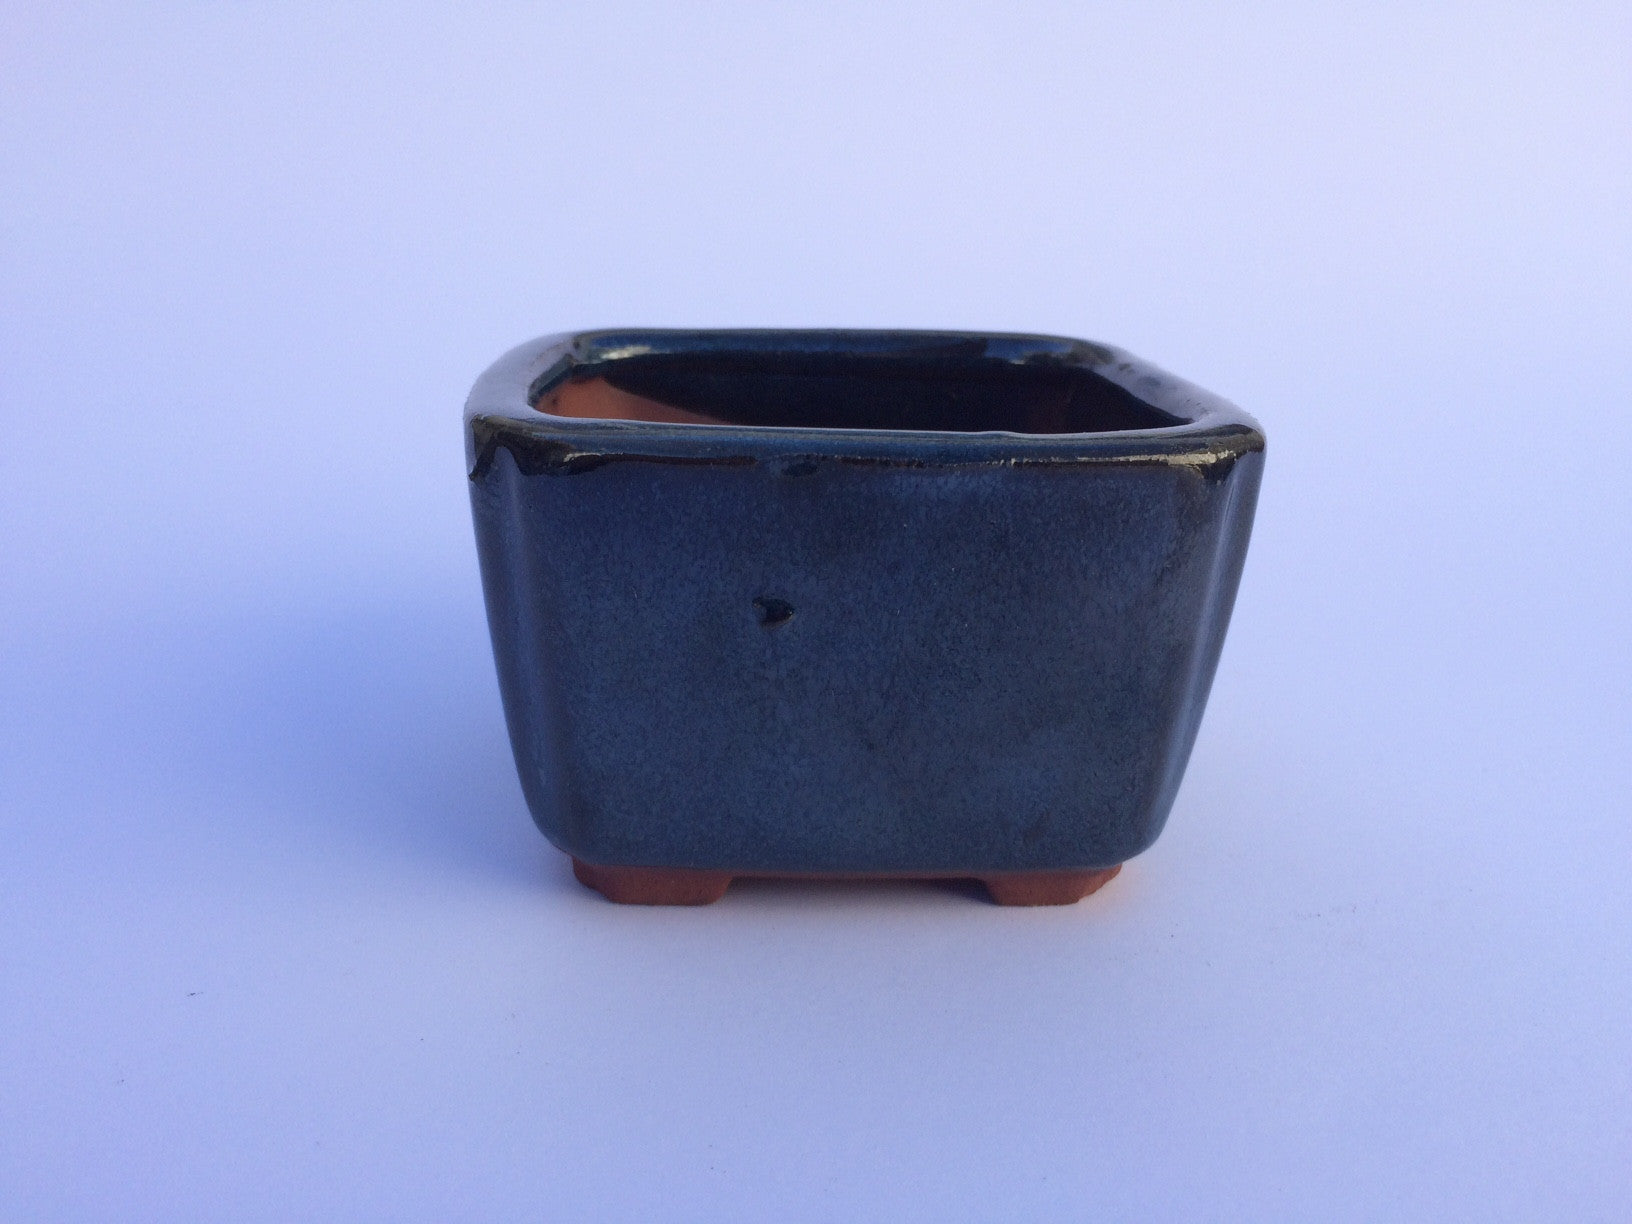 8.5cm x 8.5cm x 5.5cm Glazed Bonsai Container - Dark Aqua Green